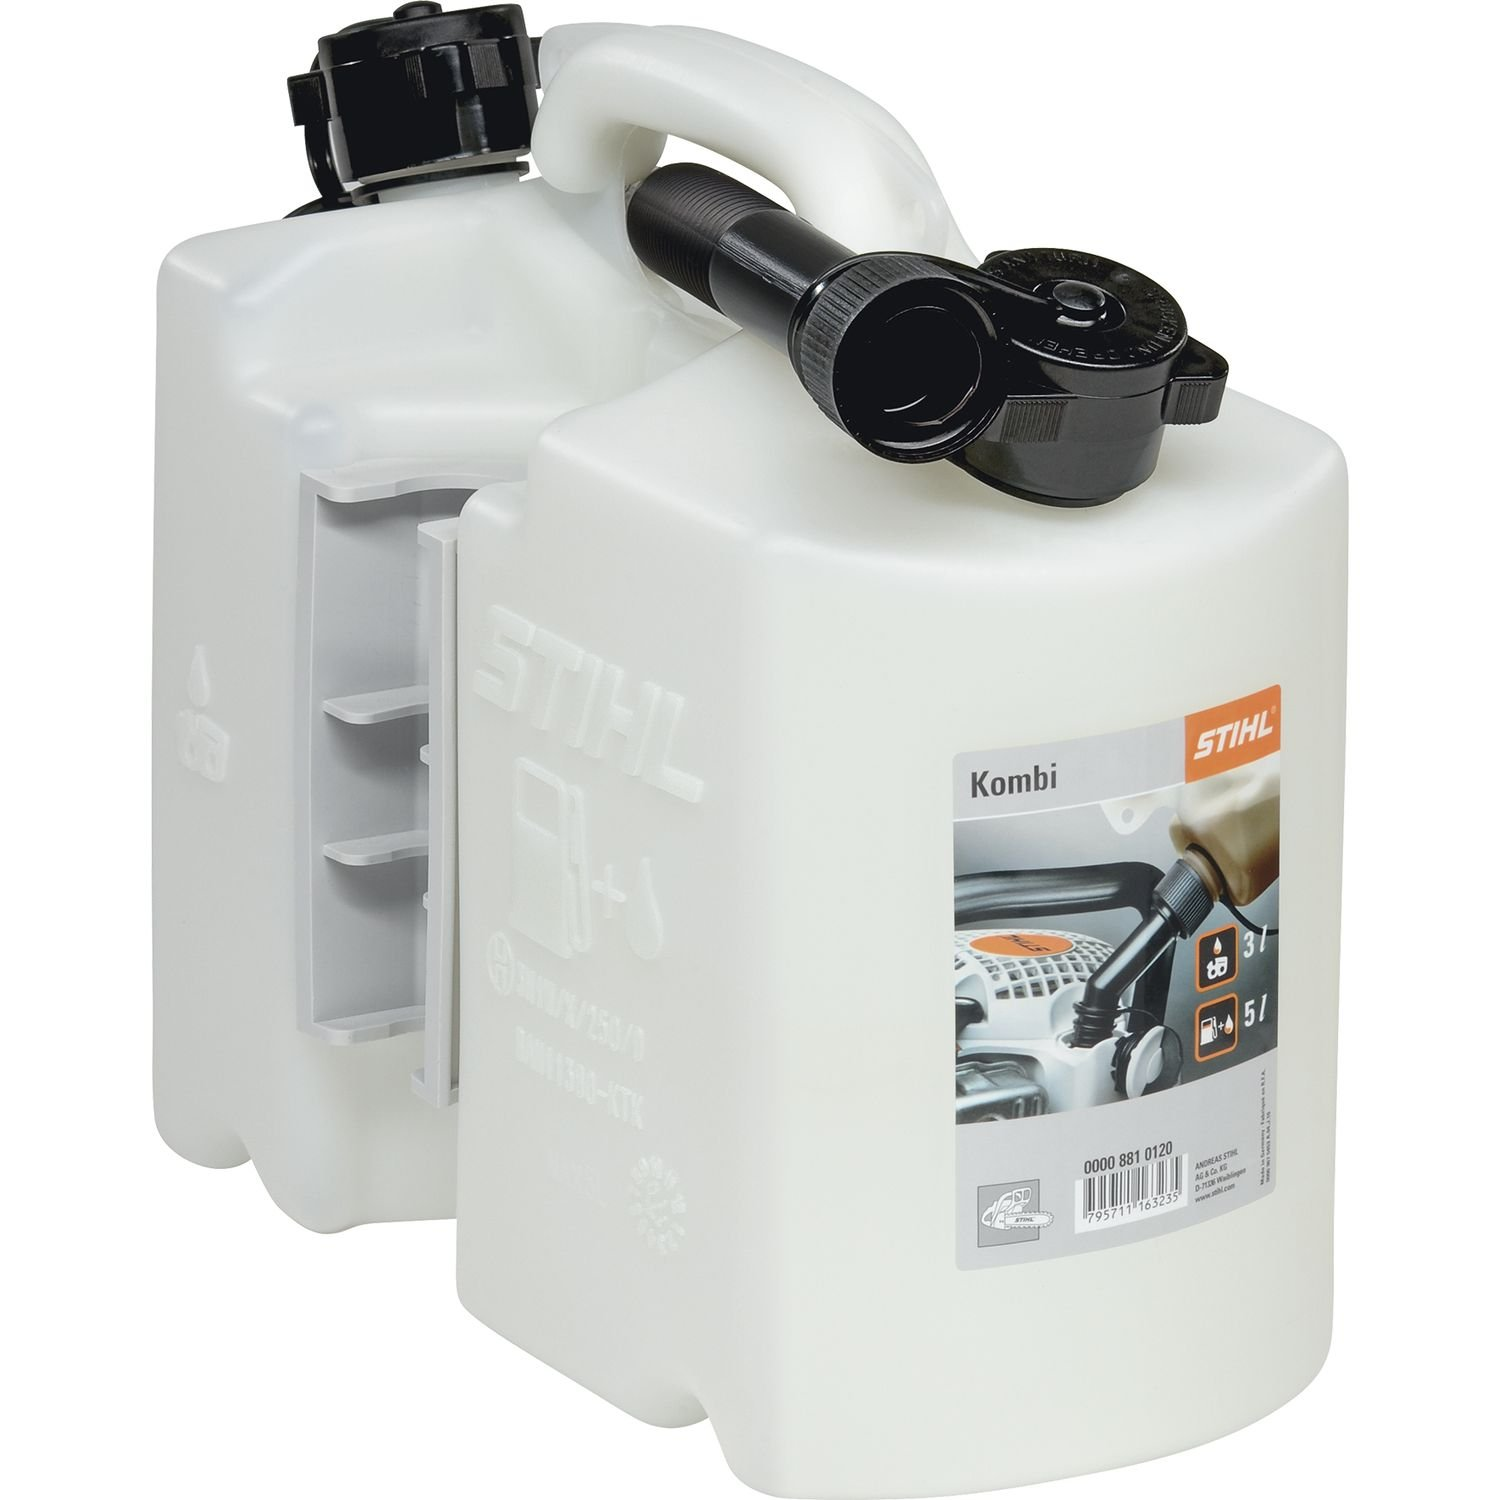 Stihl 8810120 Two-Part Fuel Can for 5L Fuel and 3L Oil – Clear 101182510